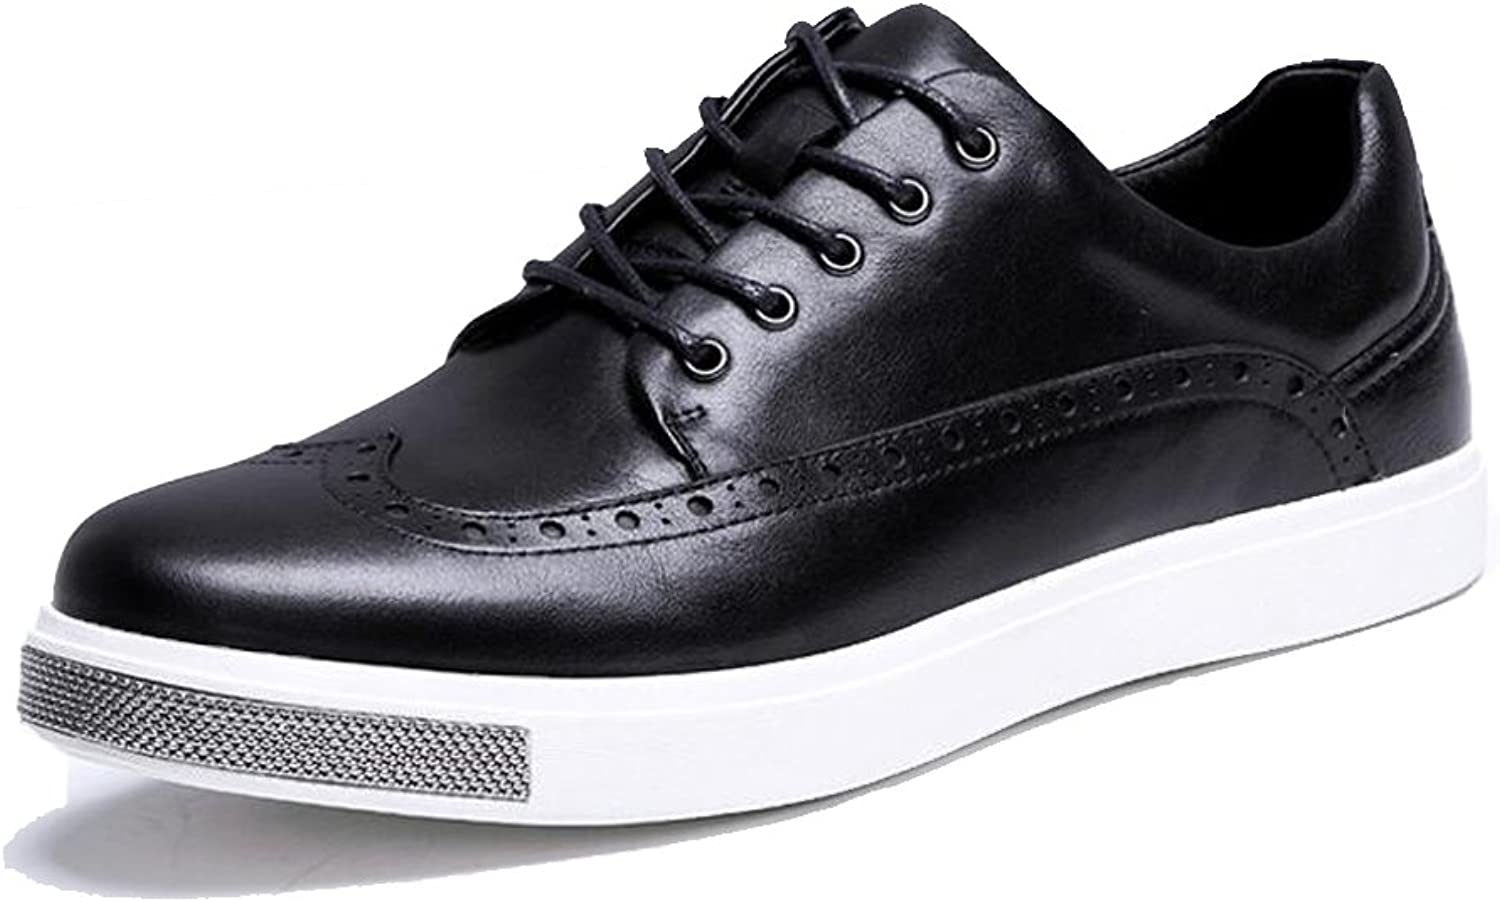 JUNBOSI New Men's shoes - Casual Lace up shoes - Brock Leather shoes Black UK Size 6 7 8 9 10